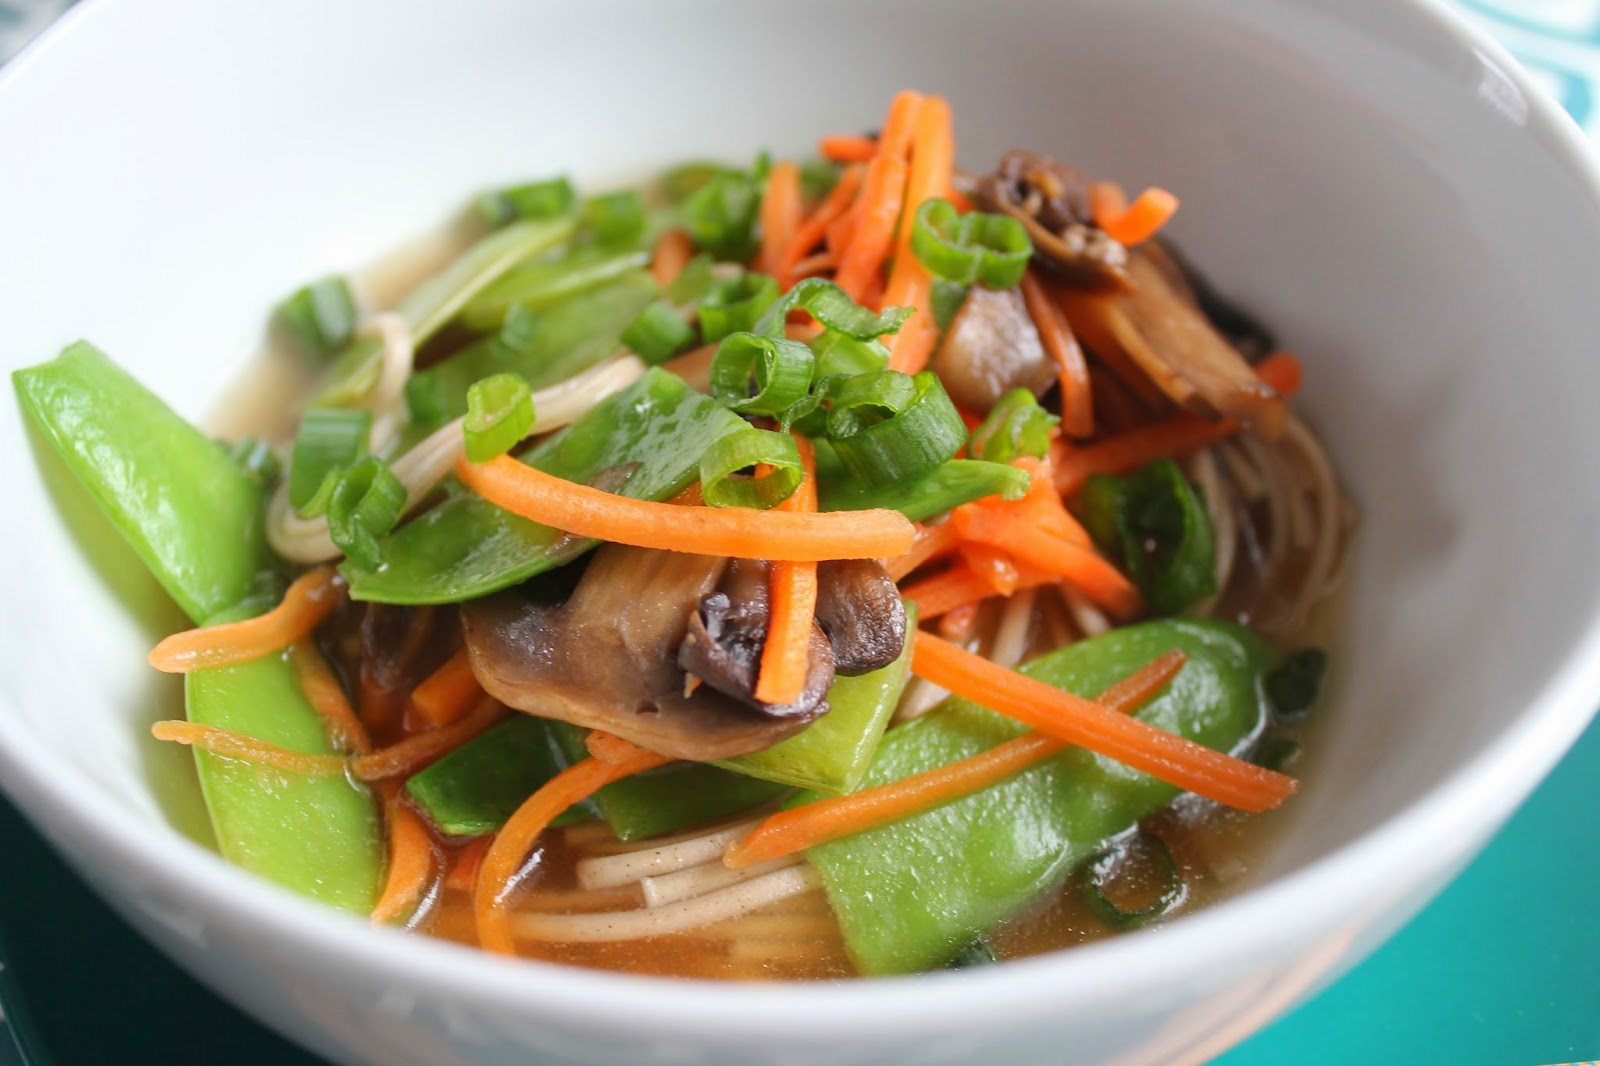 Soba noodle soup with ginger-scallion broth